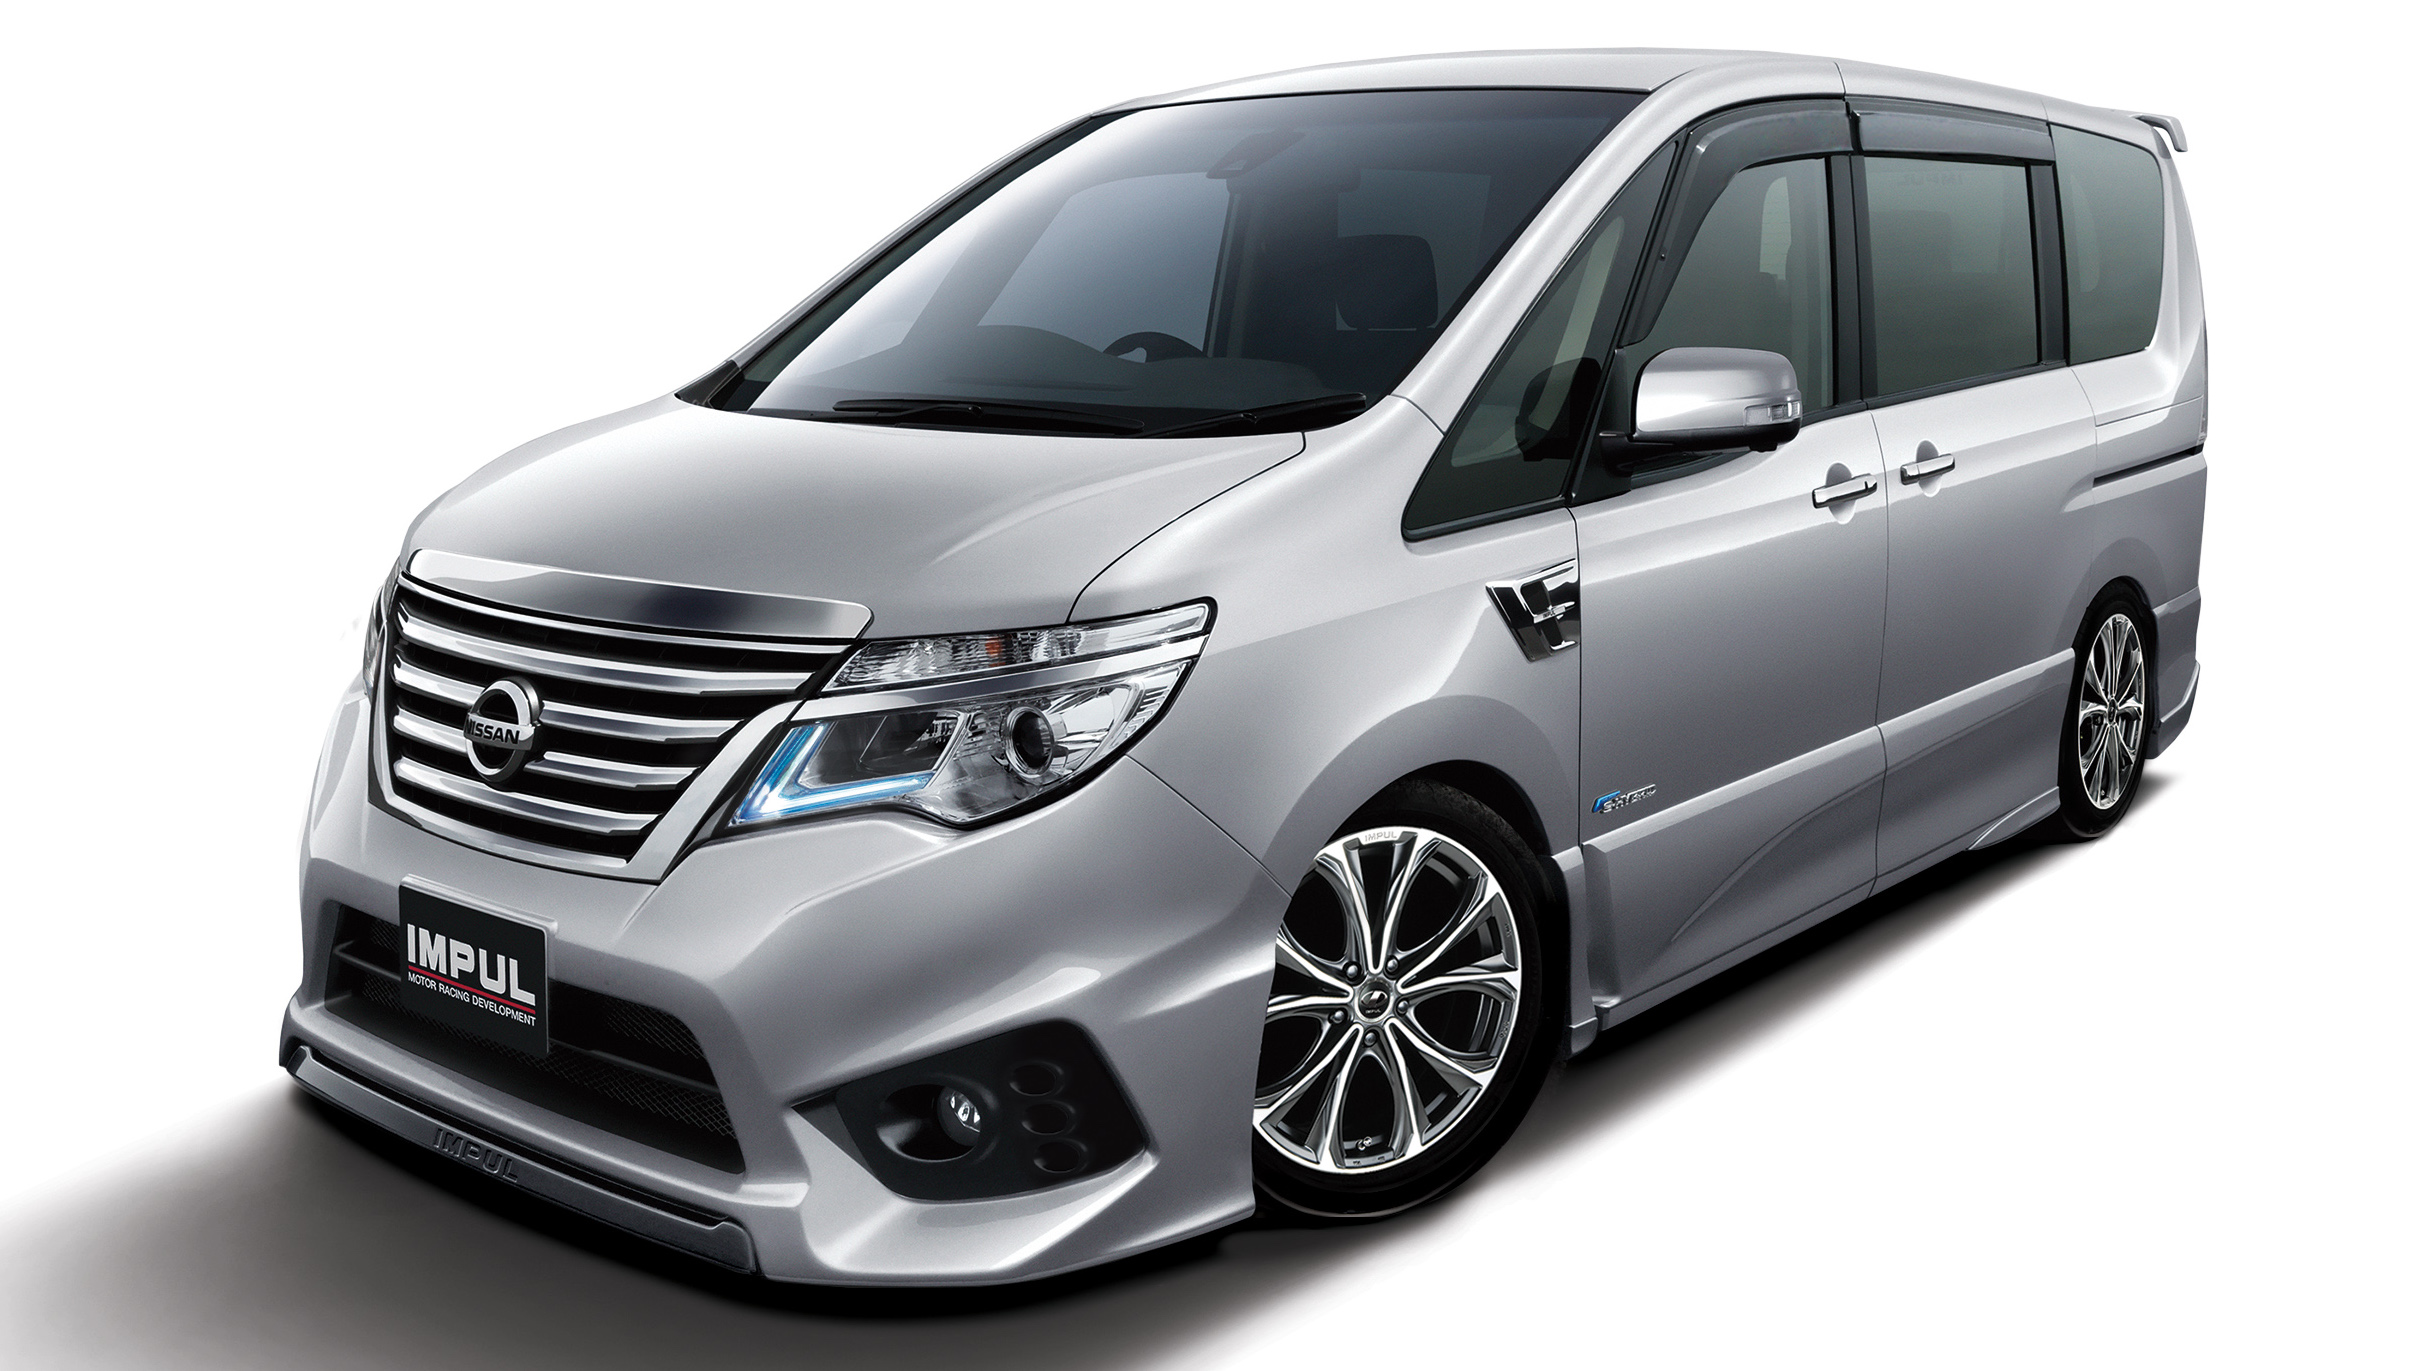 Nissan Serena S Hybrid Tuned By Impul Launched In Malaysia